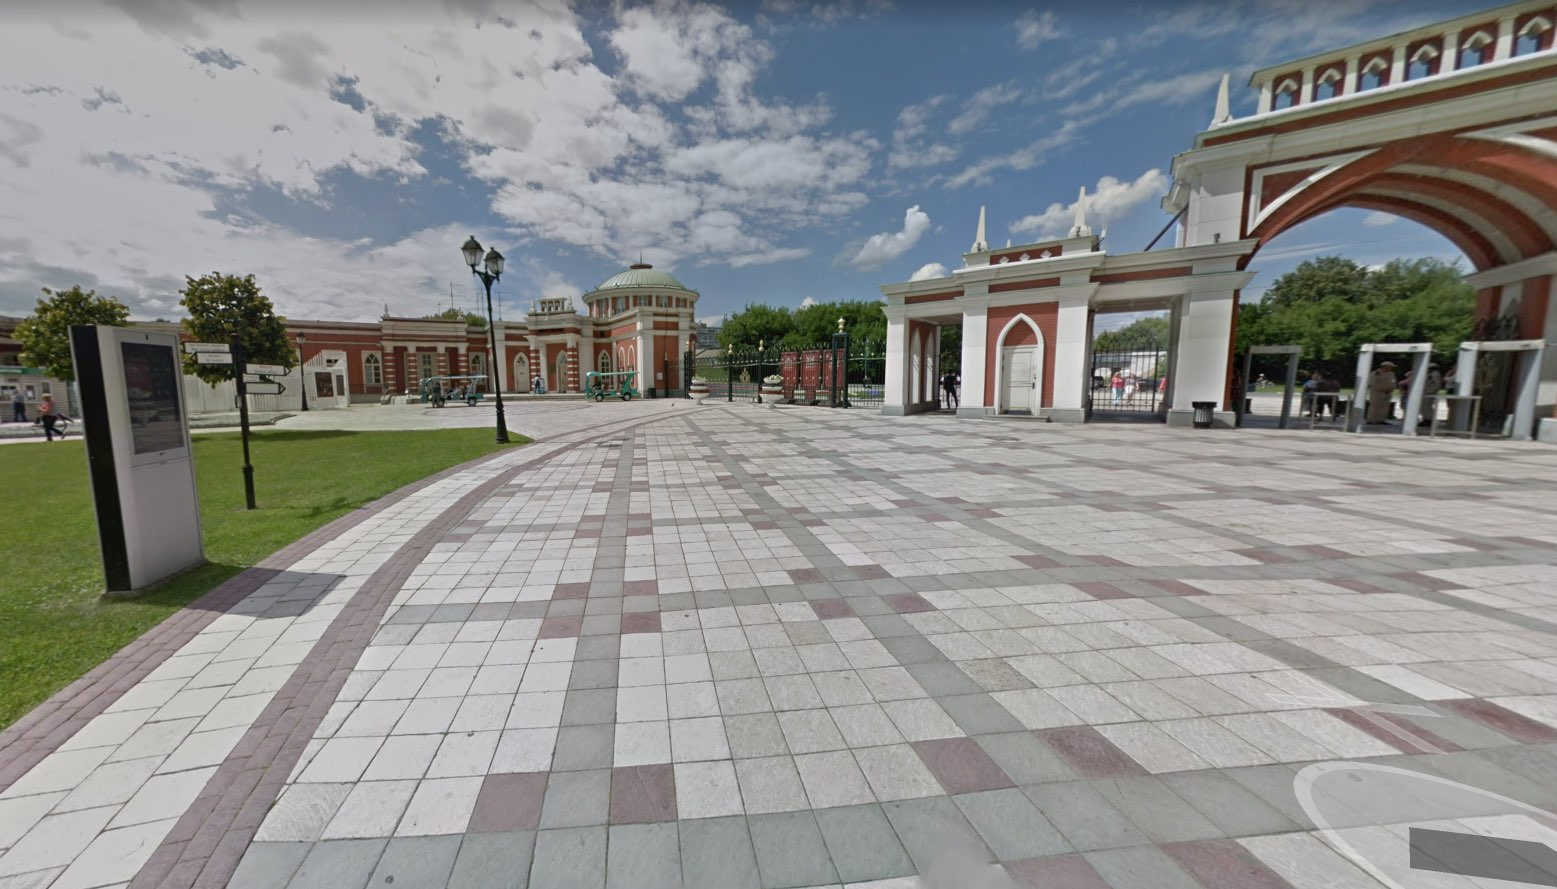 Entrance to Tsaritsyno and ticket sales